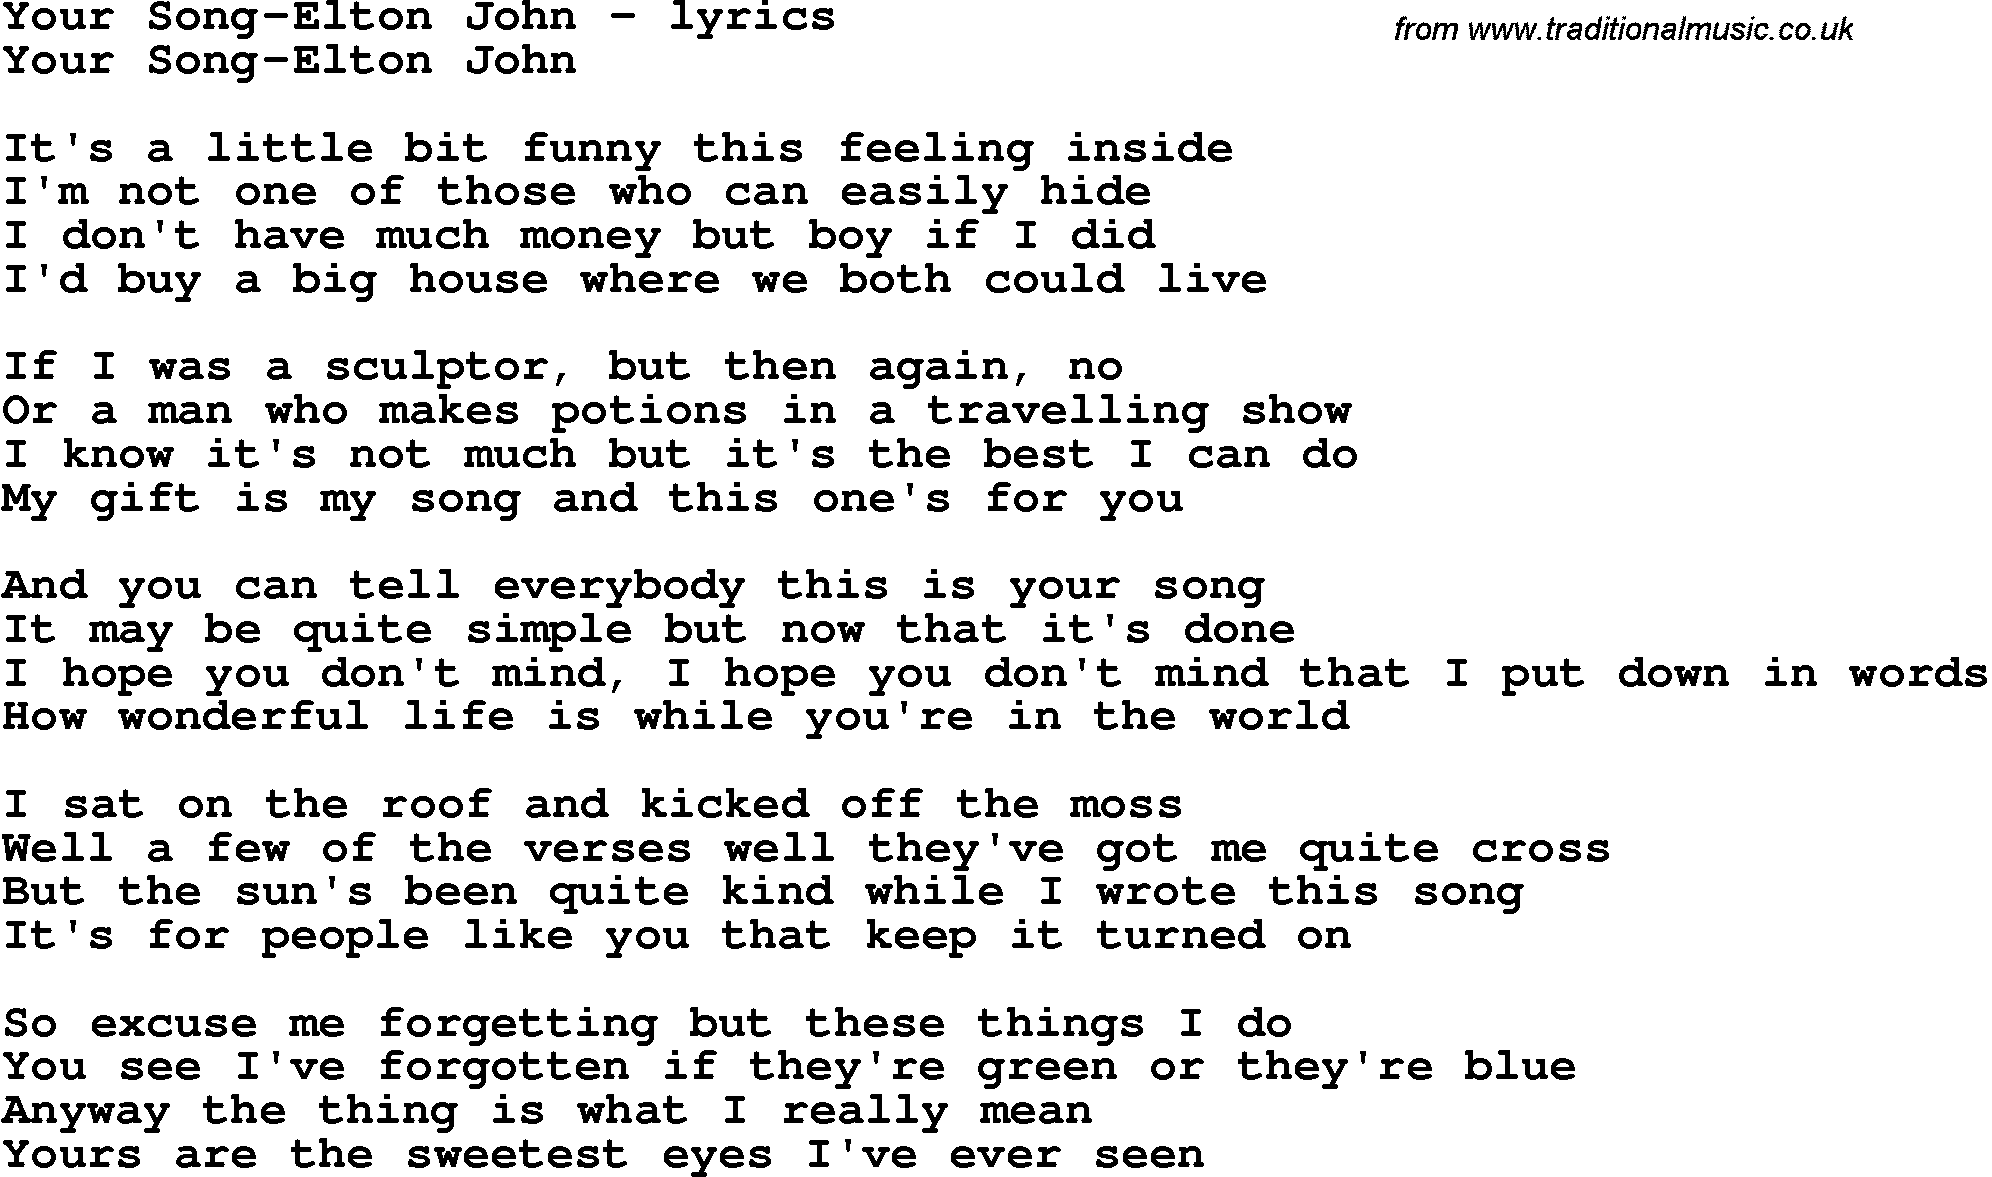 Love Song Lyrics for:Your Song-Elton John